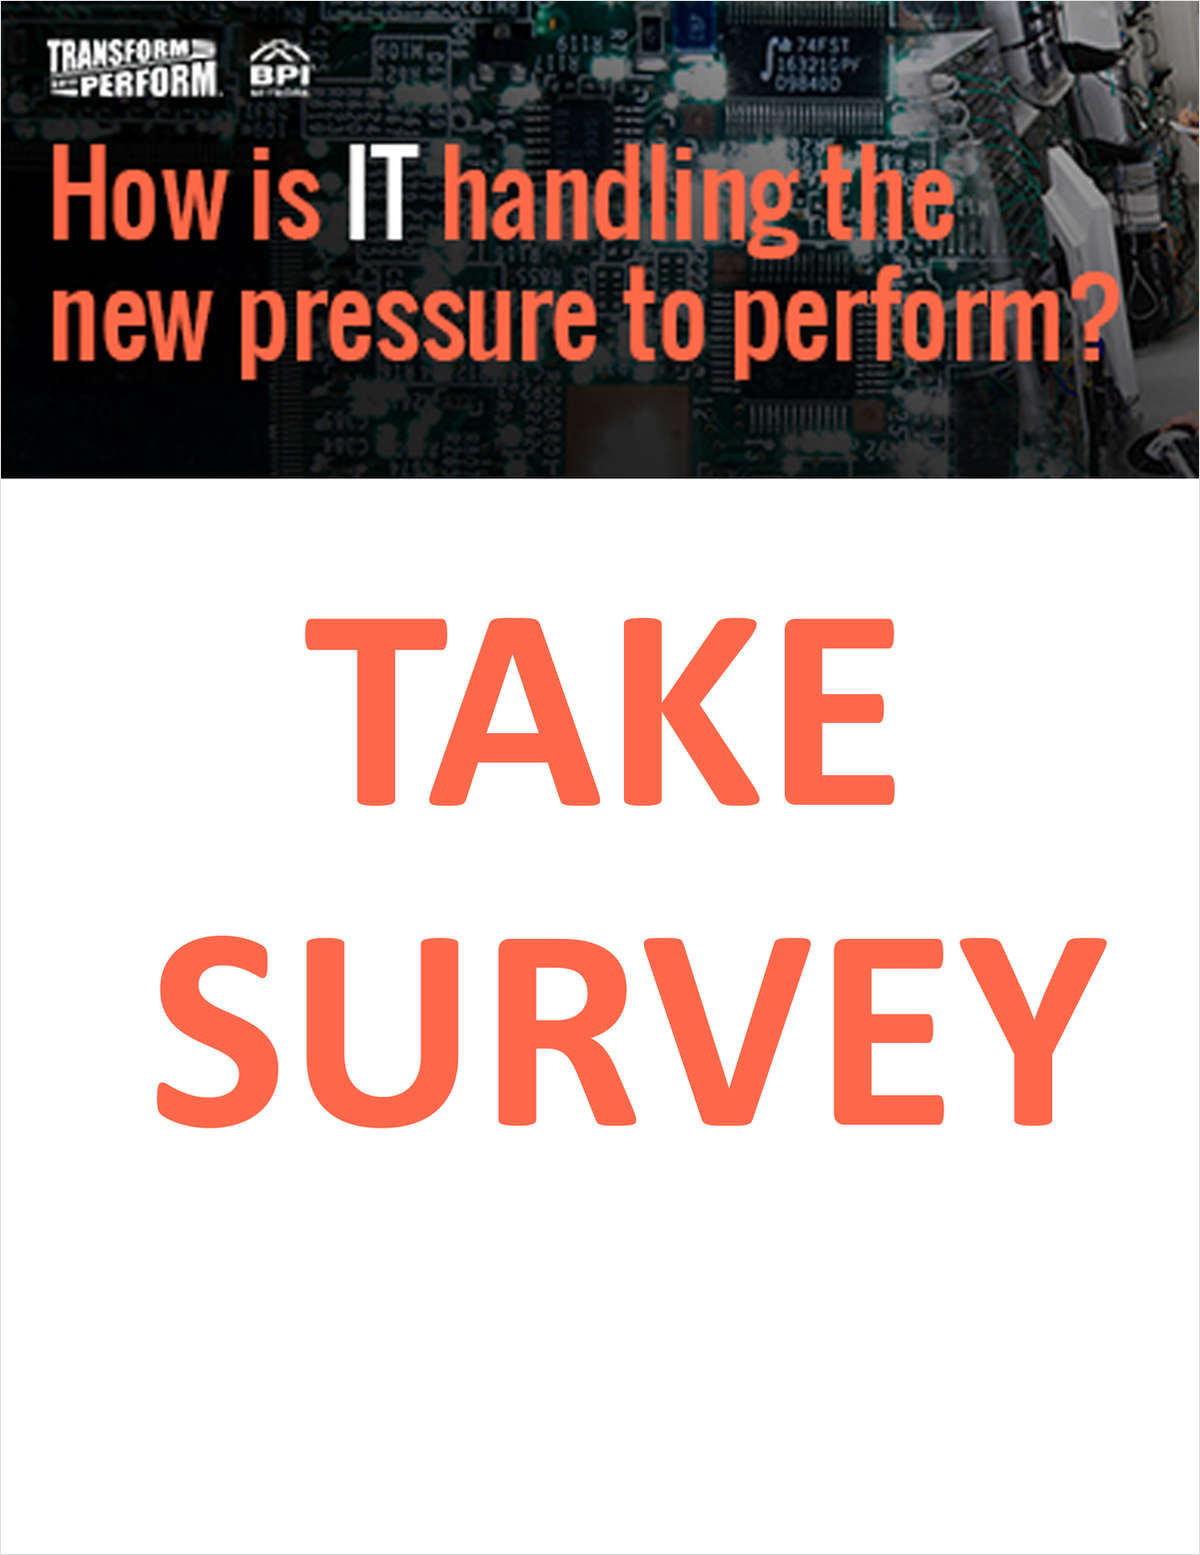 How Is IT Handling The New Pressure To Perform?